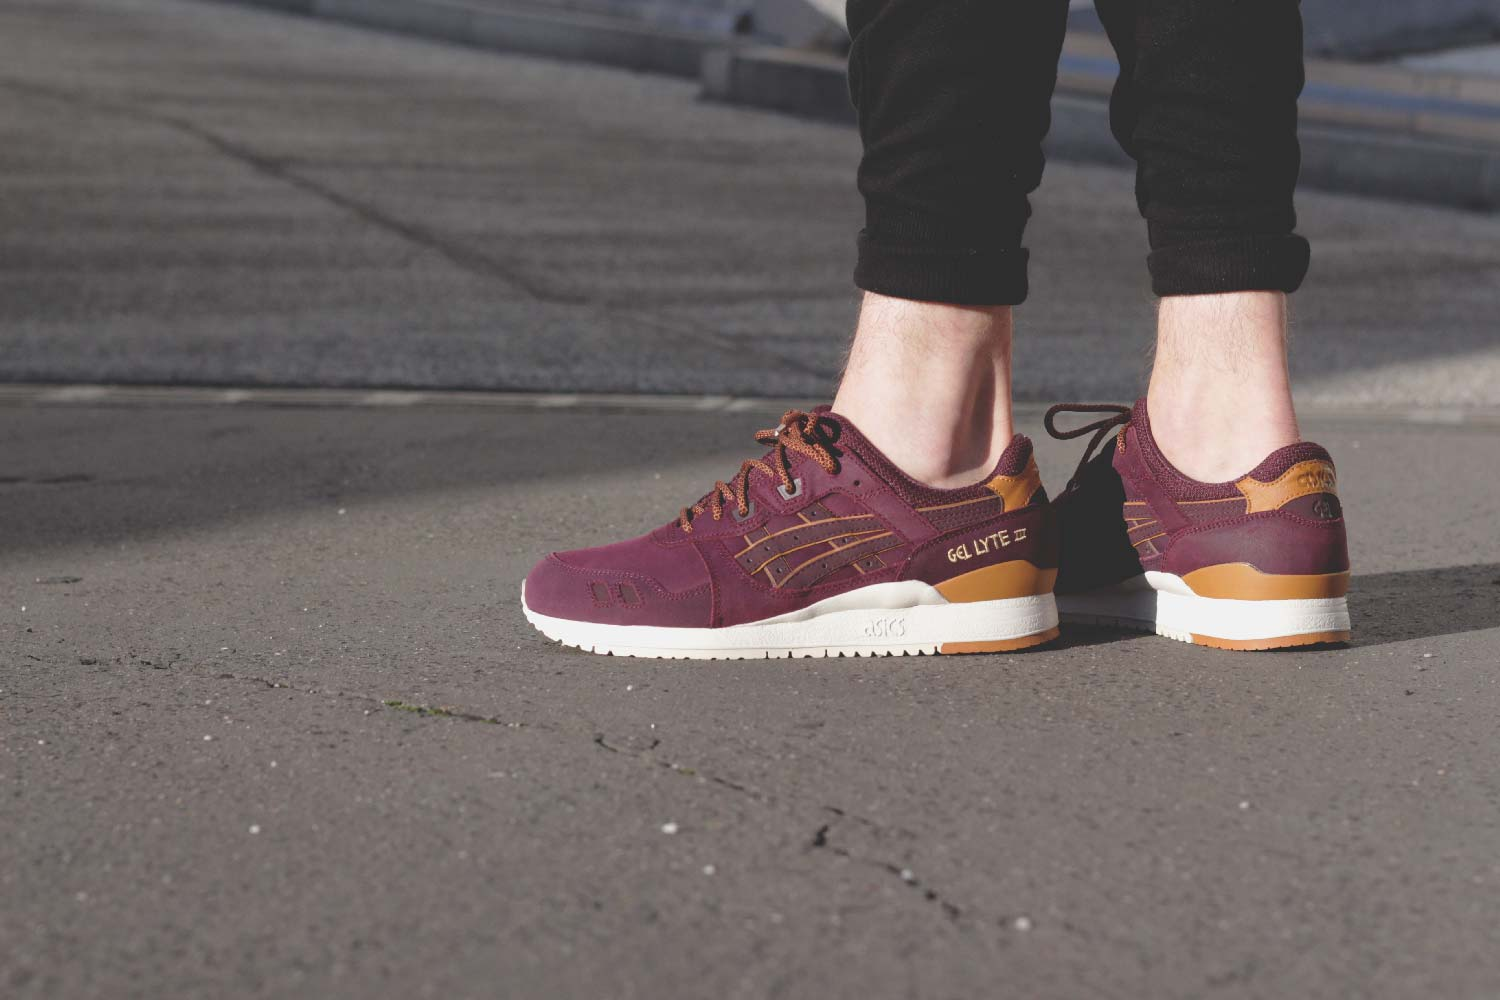 wholesale dealer 3a857 64401 Asics Gel-Lyte III Rioja Red   SAPATO Store